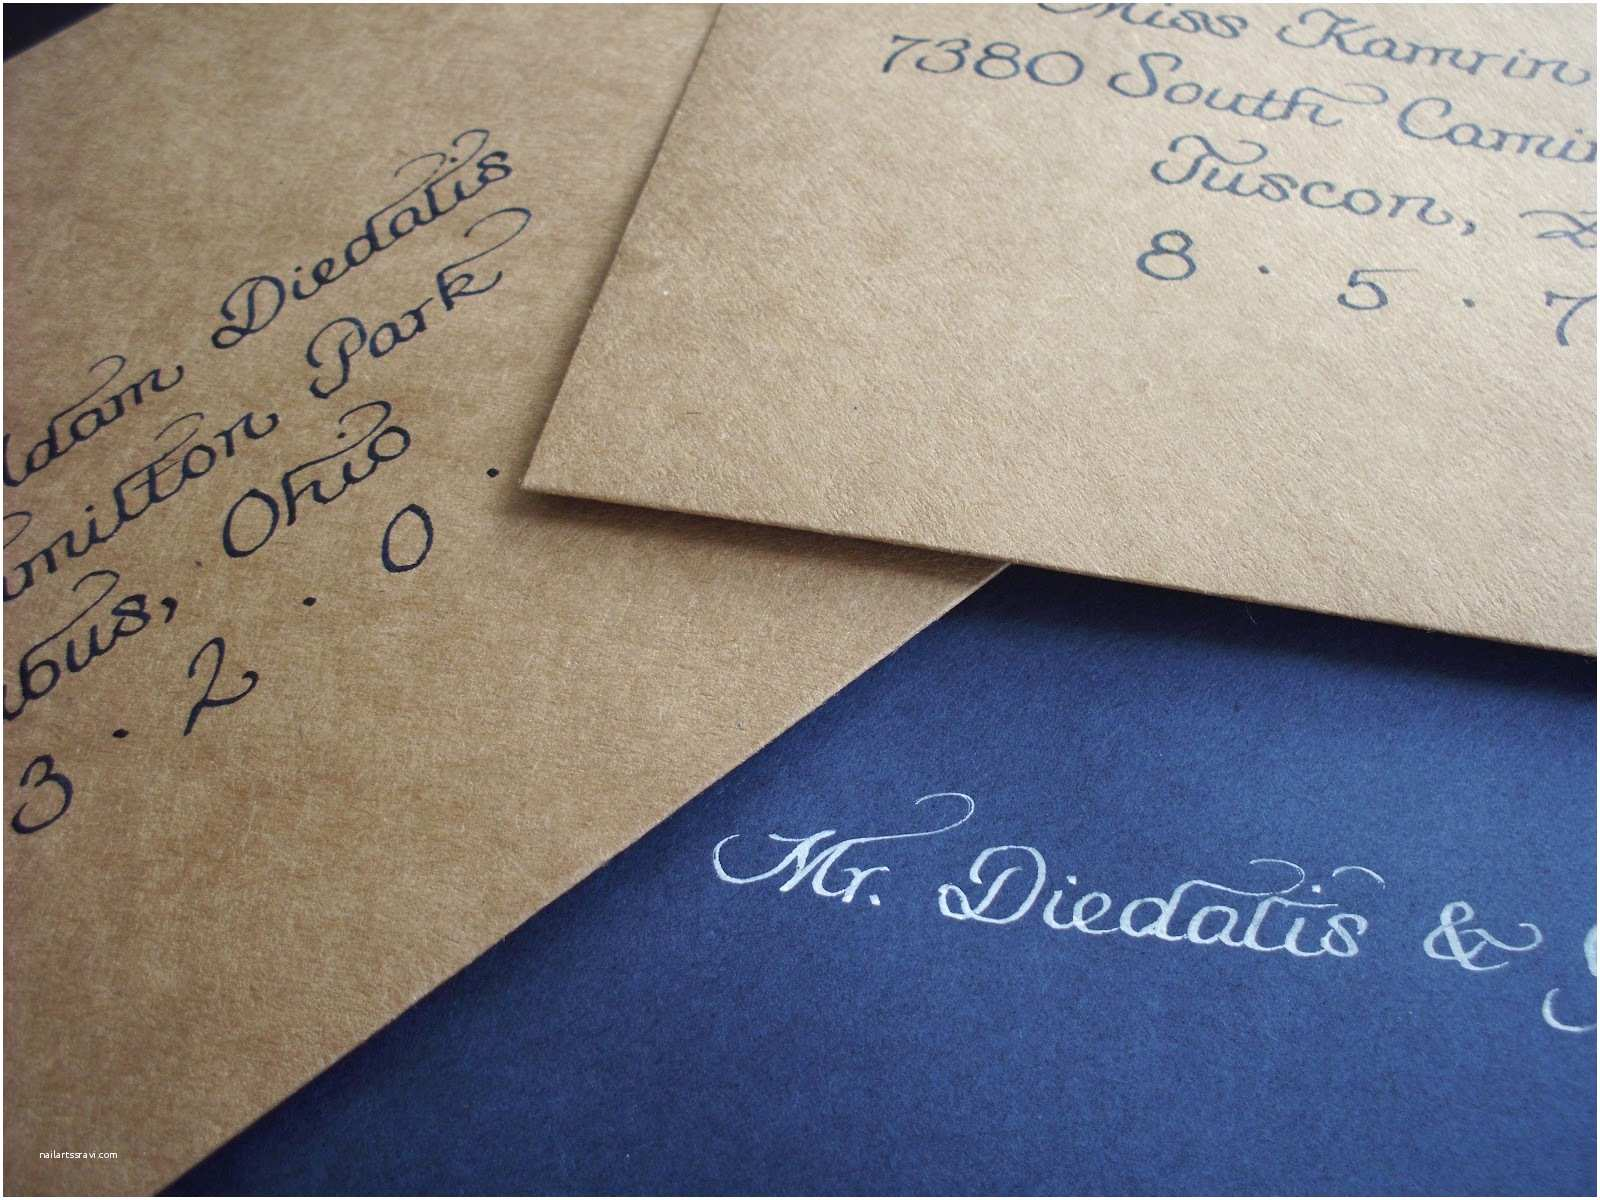 Inner and Outer Envelopes for Wedding Invitations From the ash Tree Meadow Calligraphy Addressing